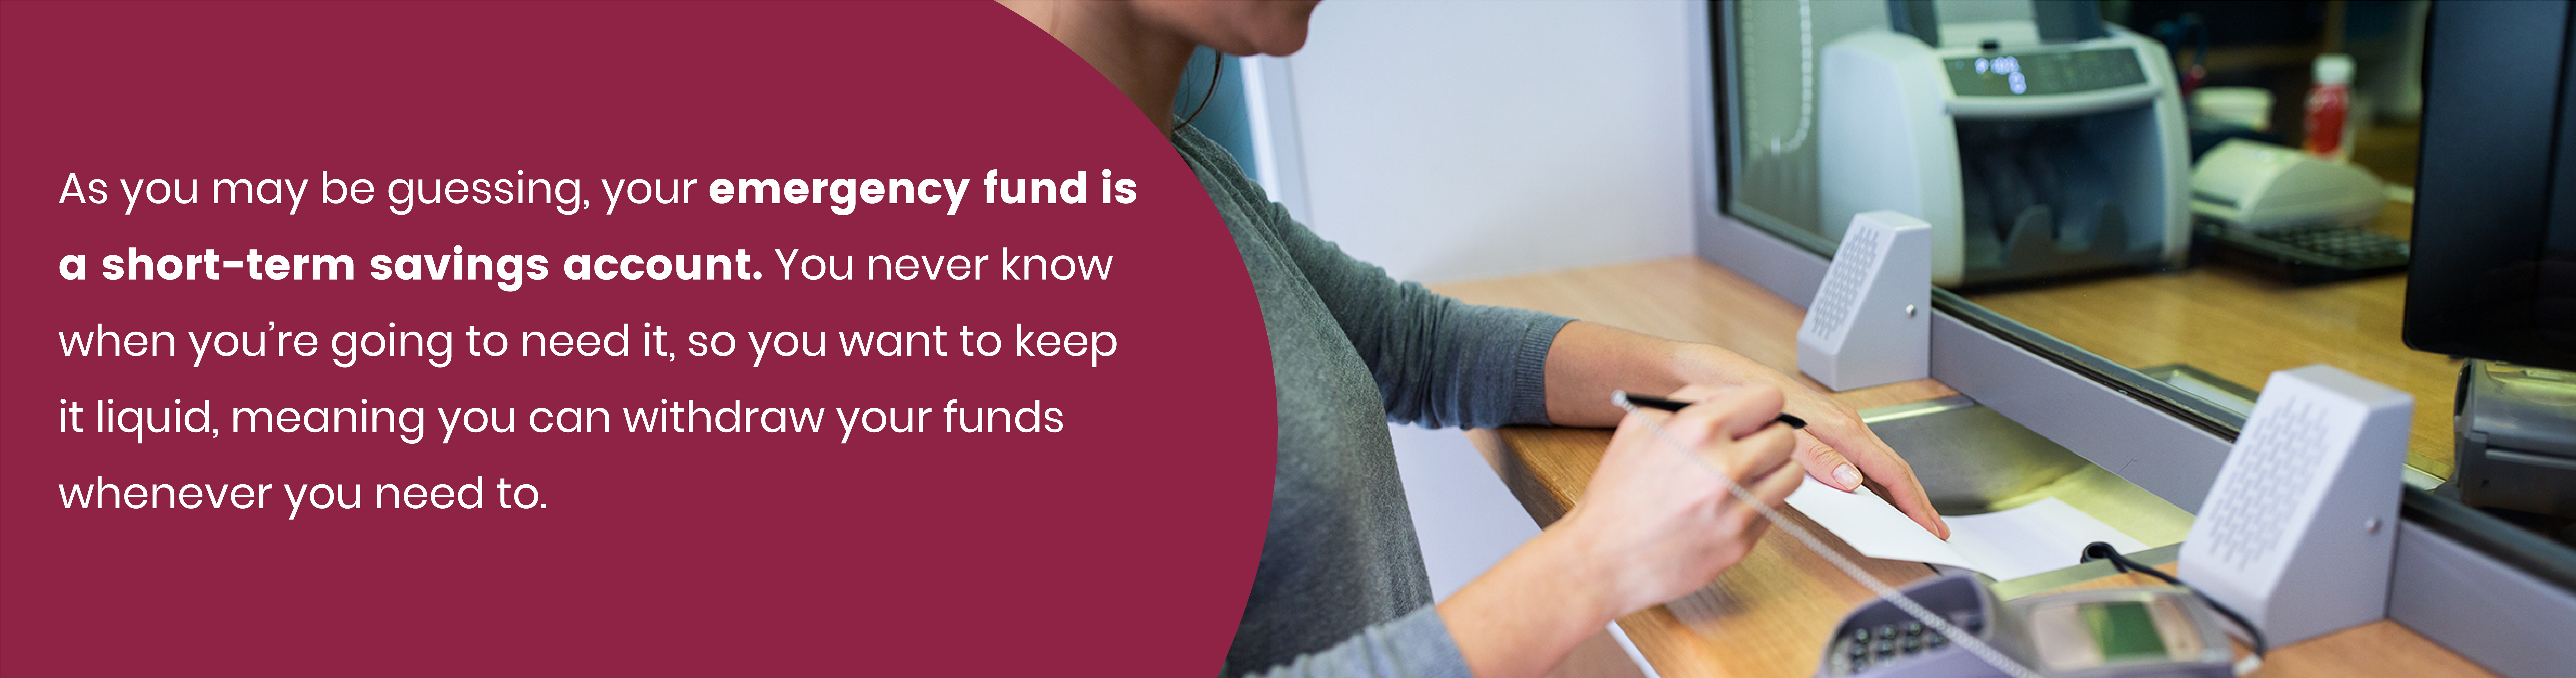 As you may be guessing, your emergency fund is a short-term savings account. You never know when you're going to need it, so you want to keep it liquid, meaning you can withdraw your funds whenever you need to.